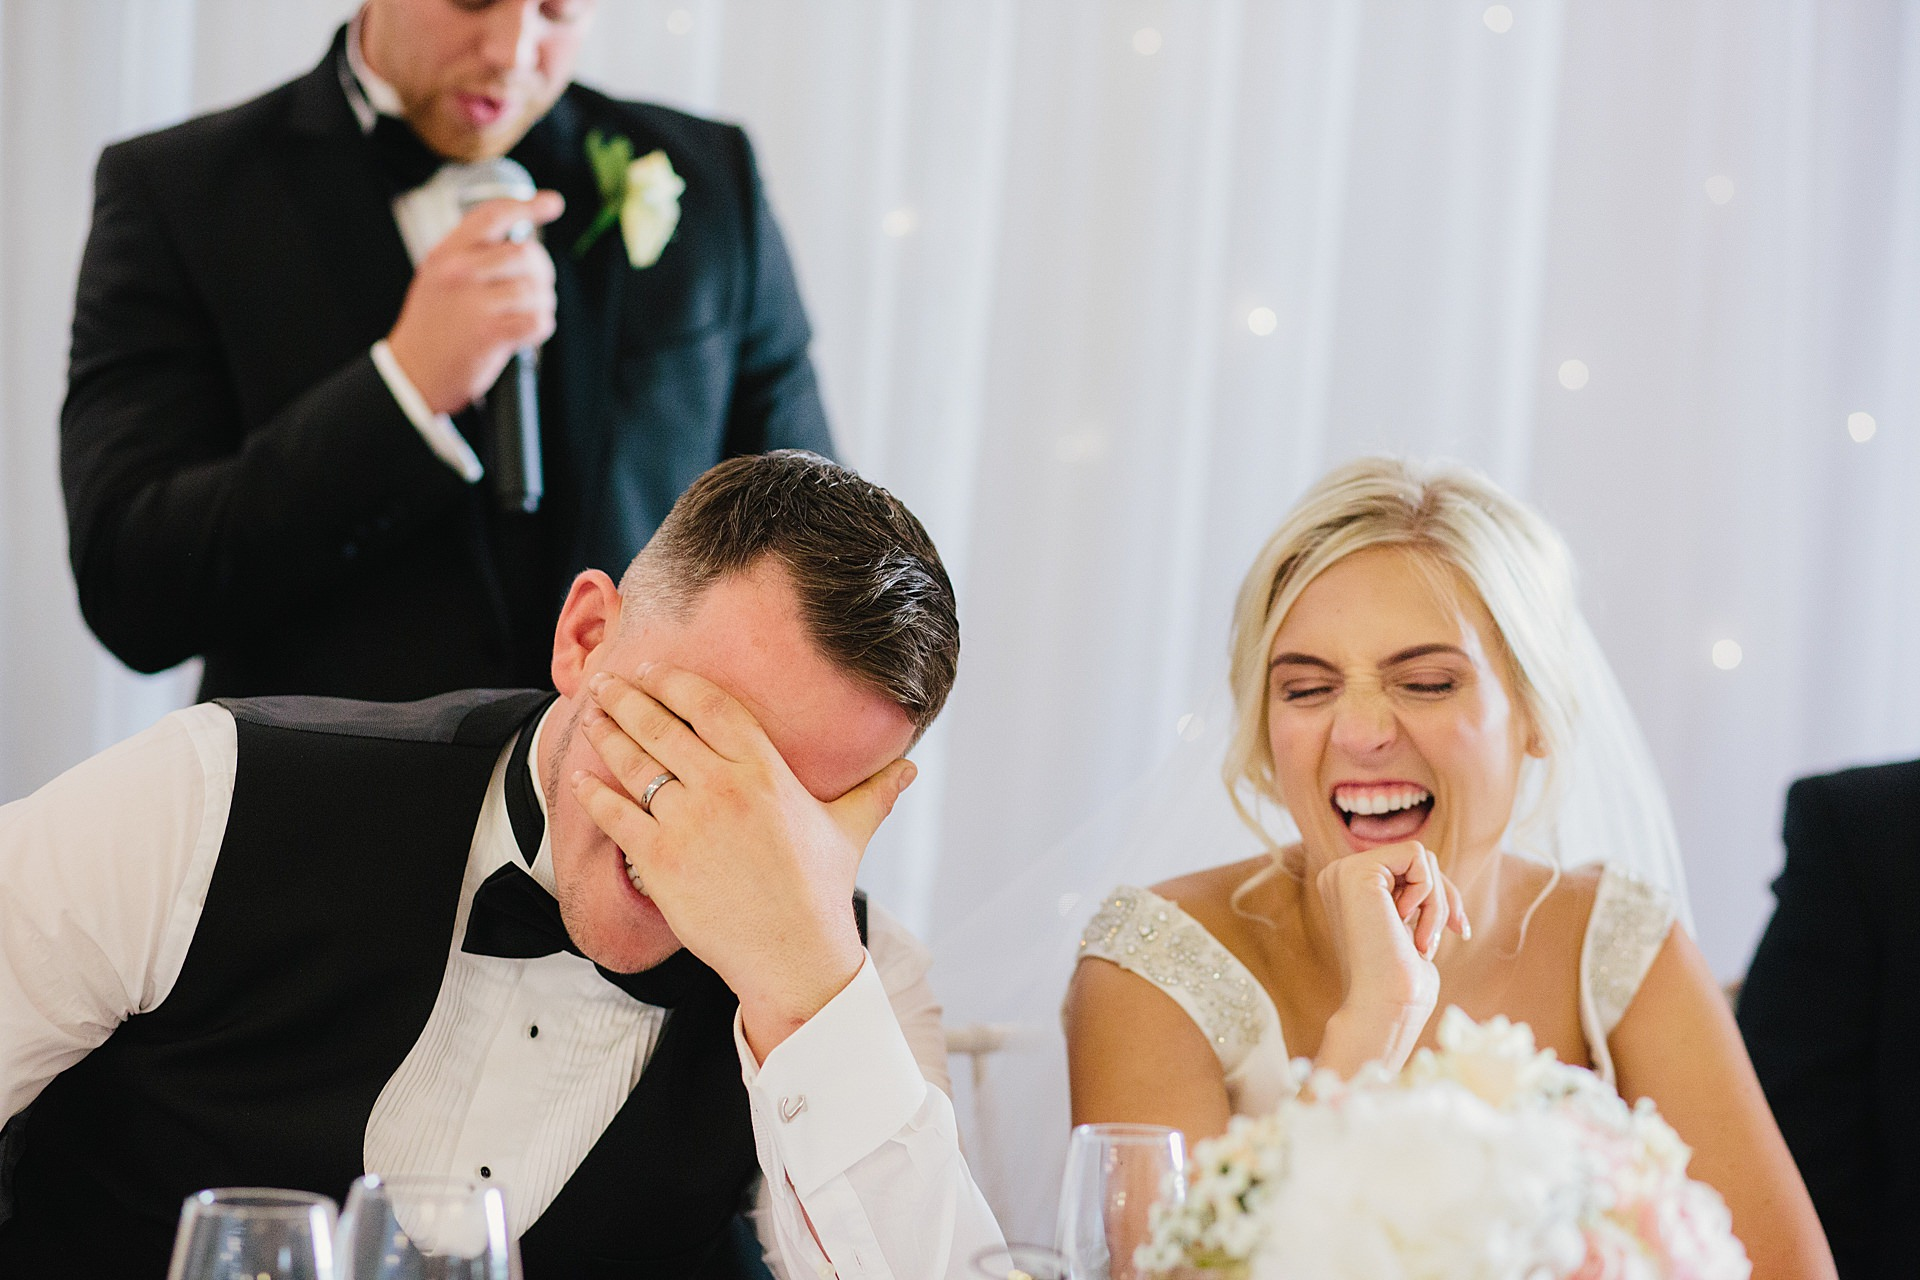 Bride and groom laughing at the best man's wedding speech